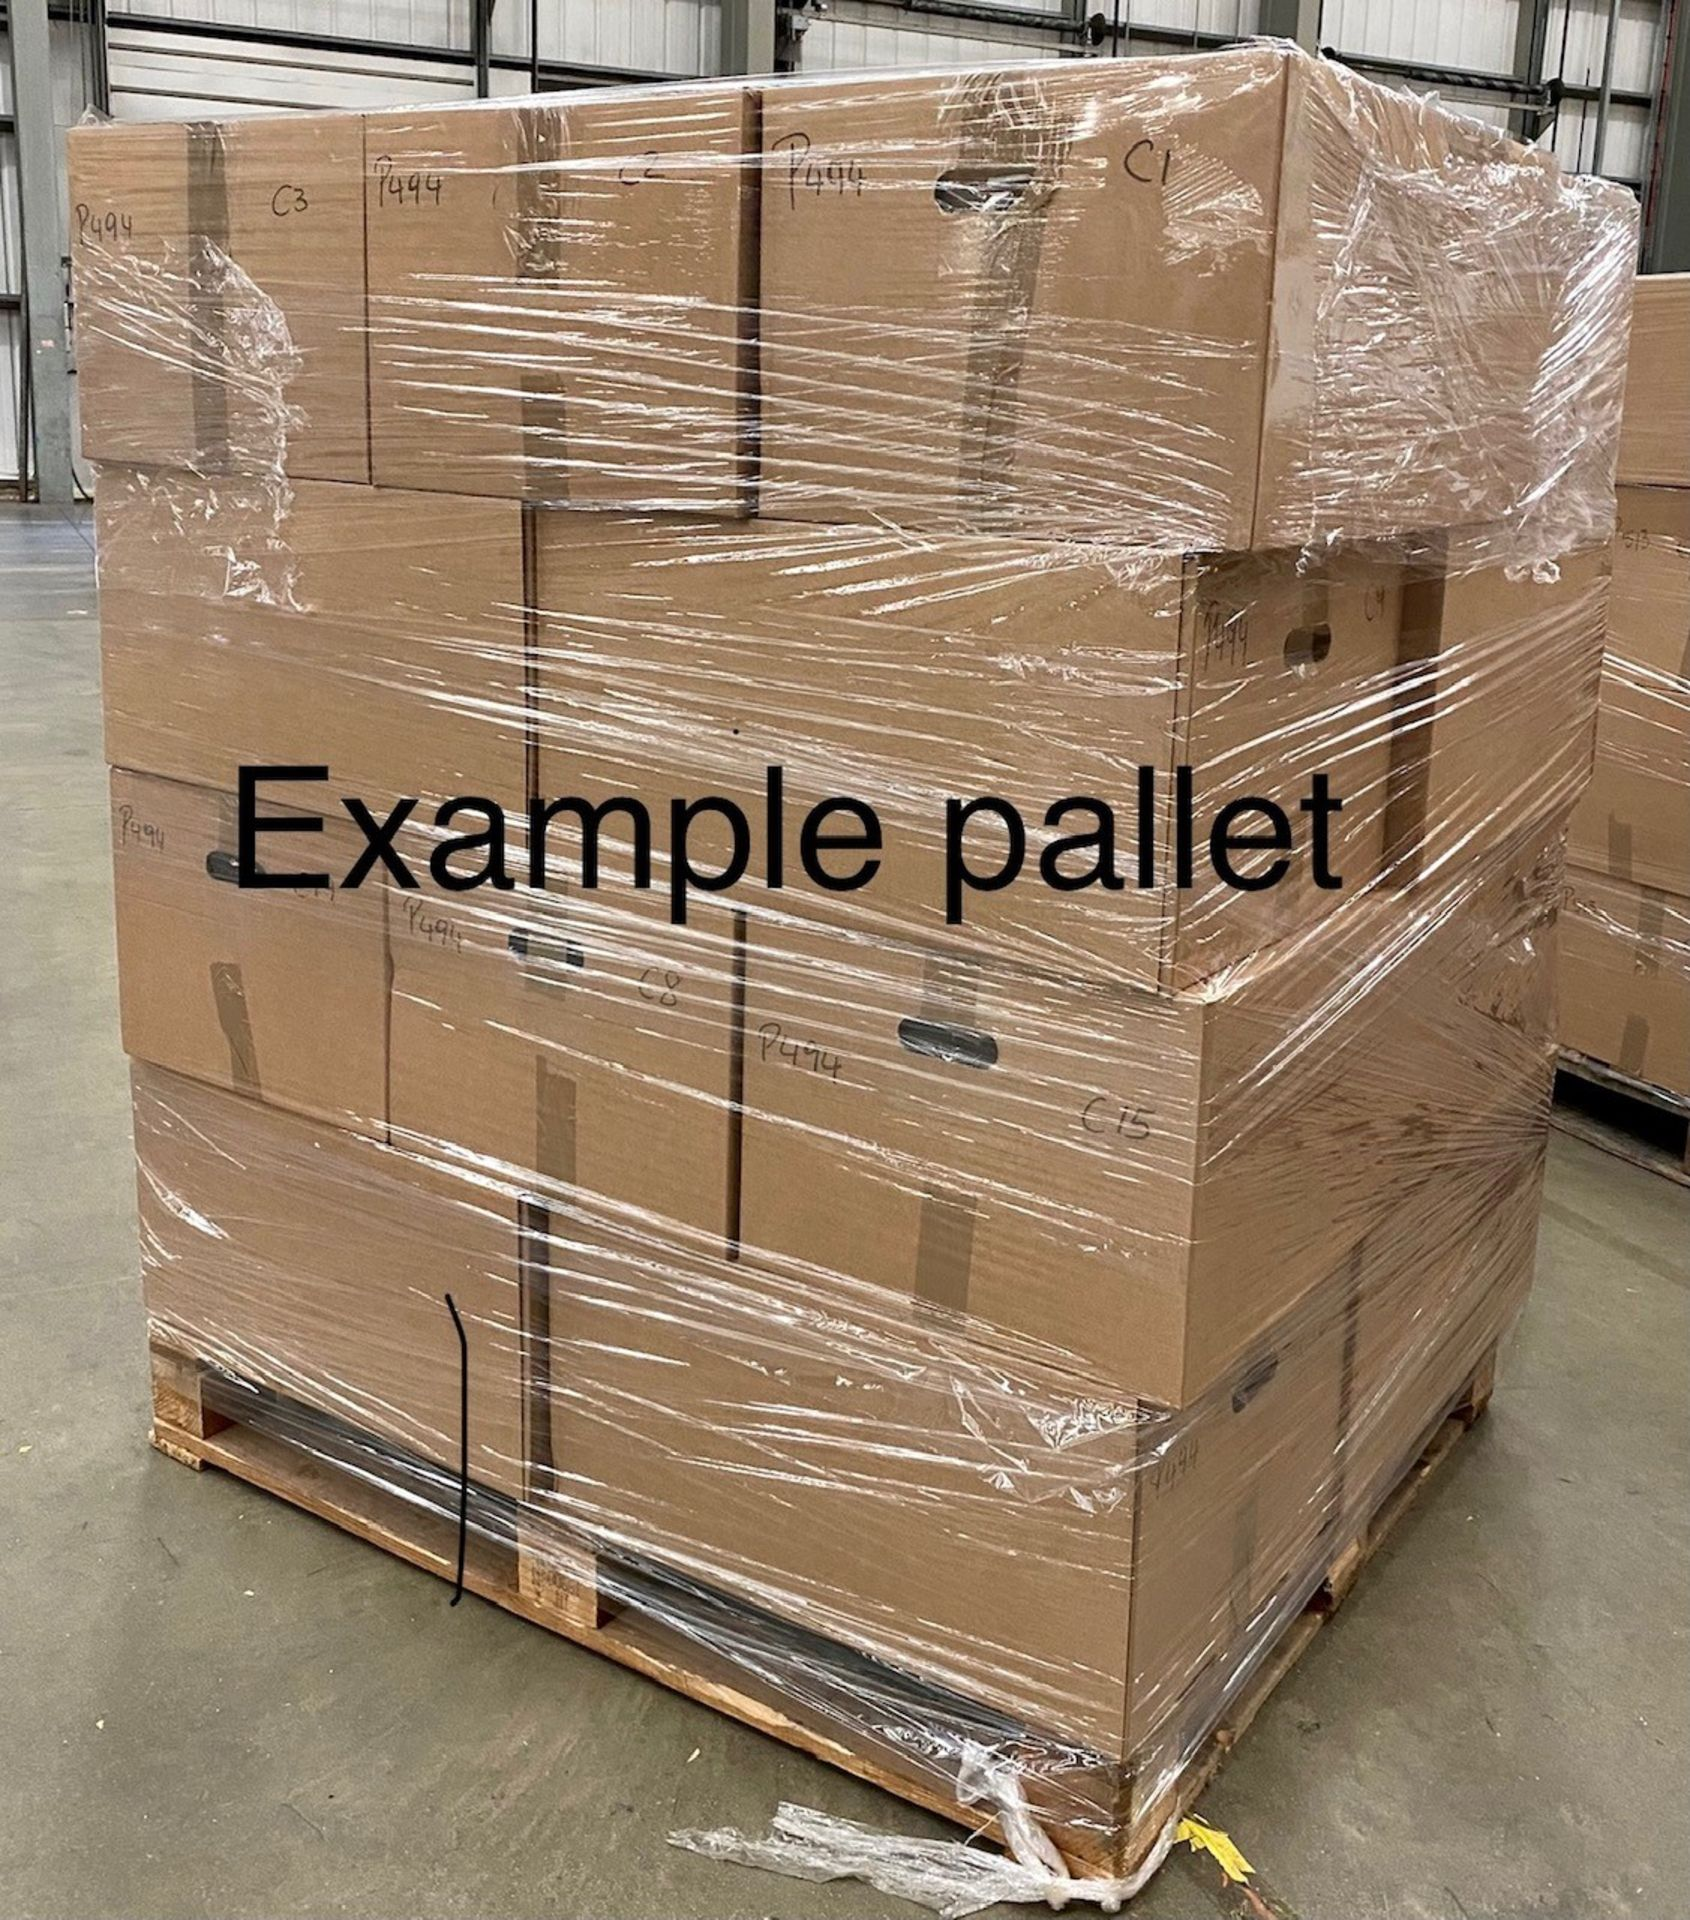 1 x mixed pallet = 312 items of Grade A M&S Menswear. Approx Total RRP £11,145.50 - Image 9 of 9